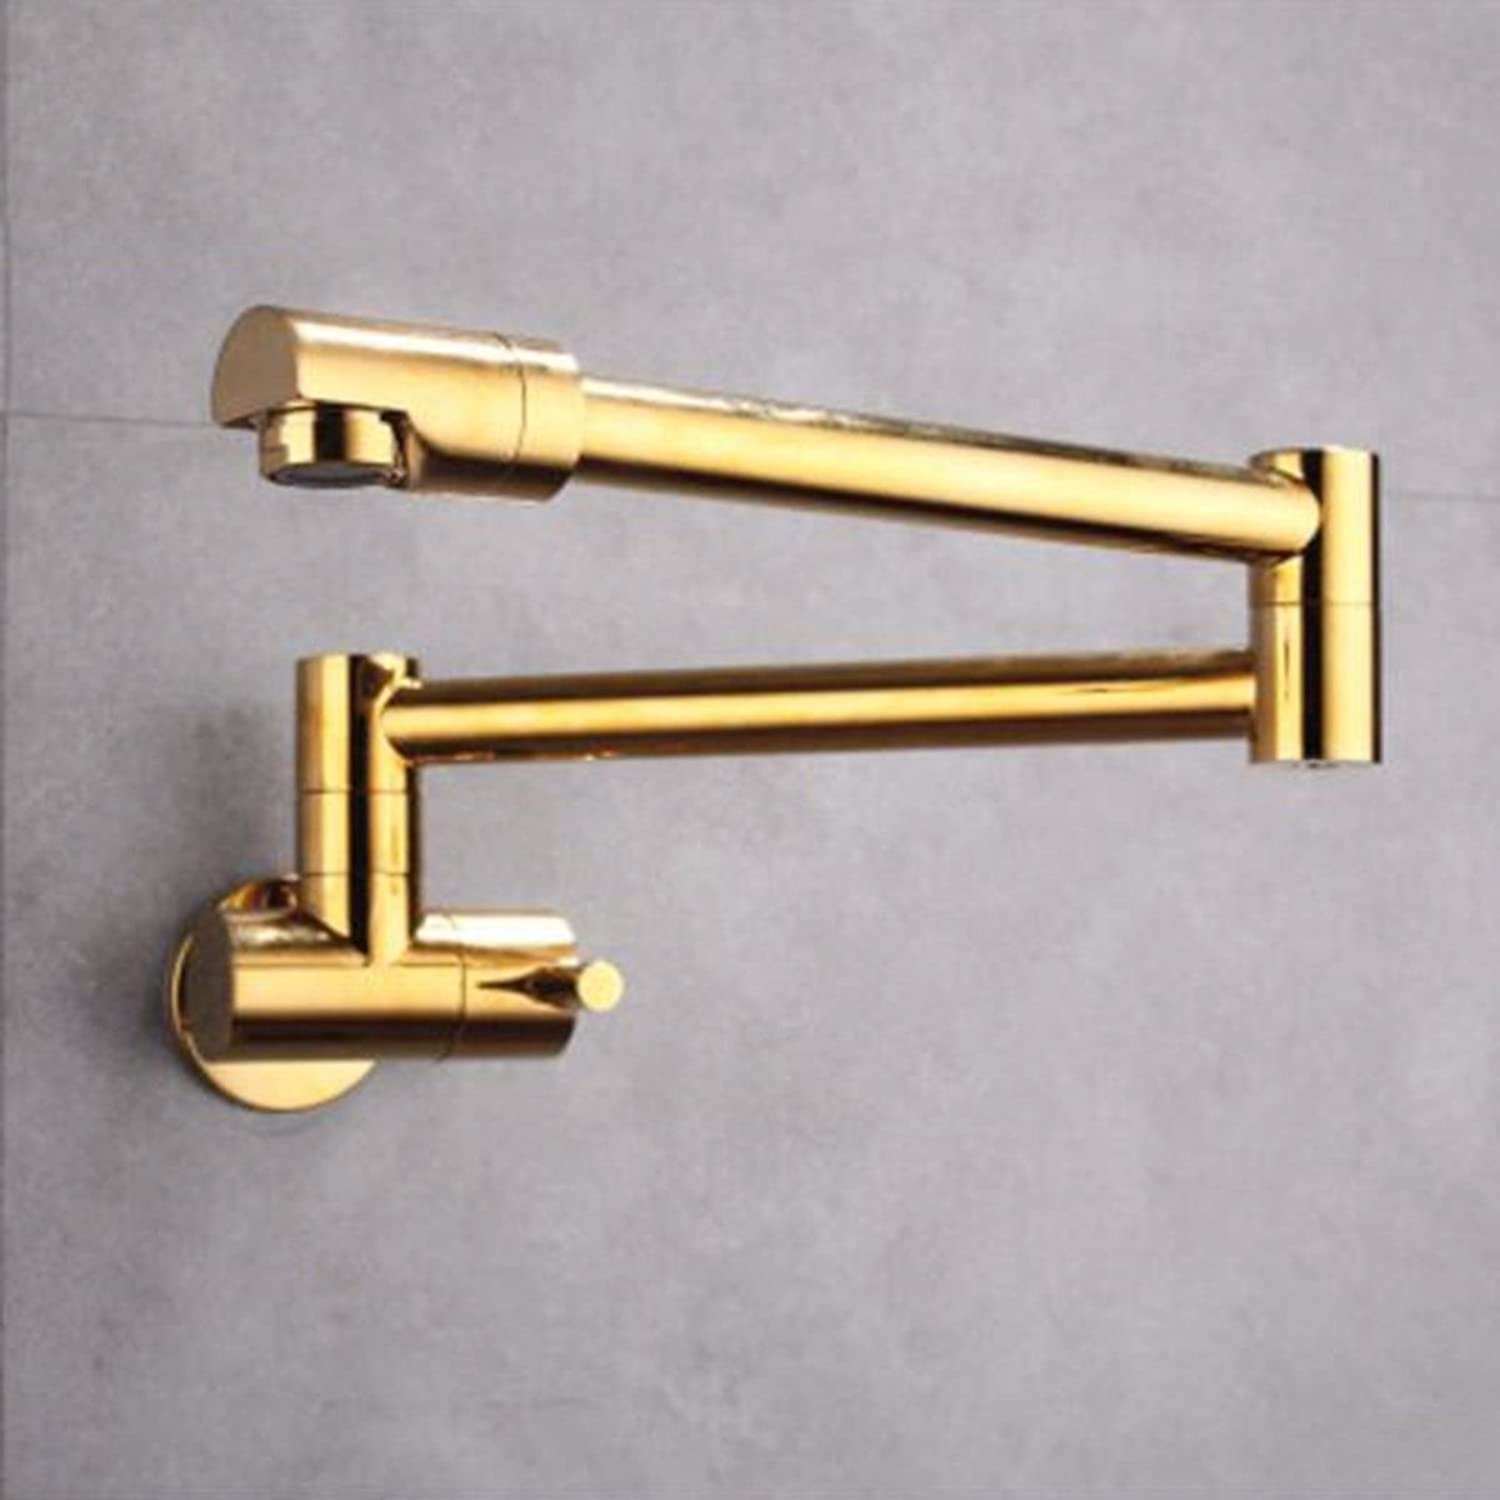 Hlluya Professional Sink Mixer Tap Kitchen Faucet The copper into the wall mounted single cold kitchen folding faucet dish washing basin sink faucet gold